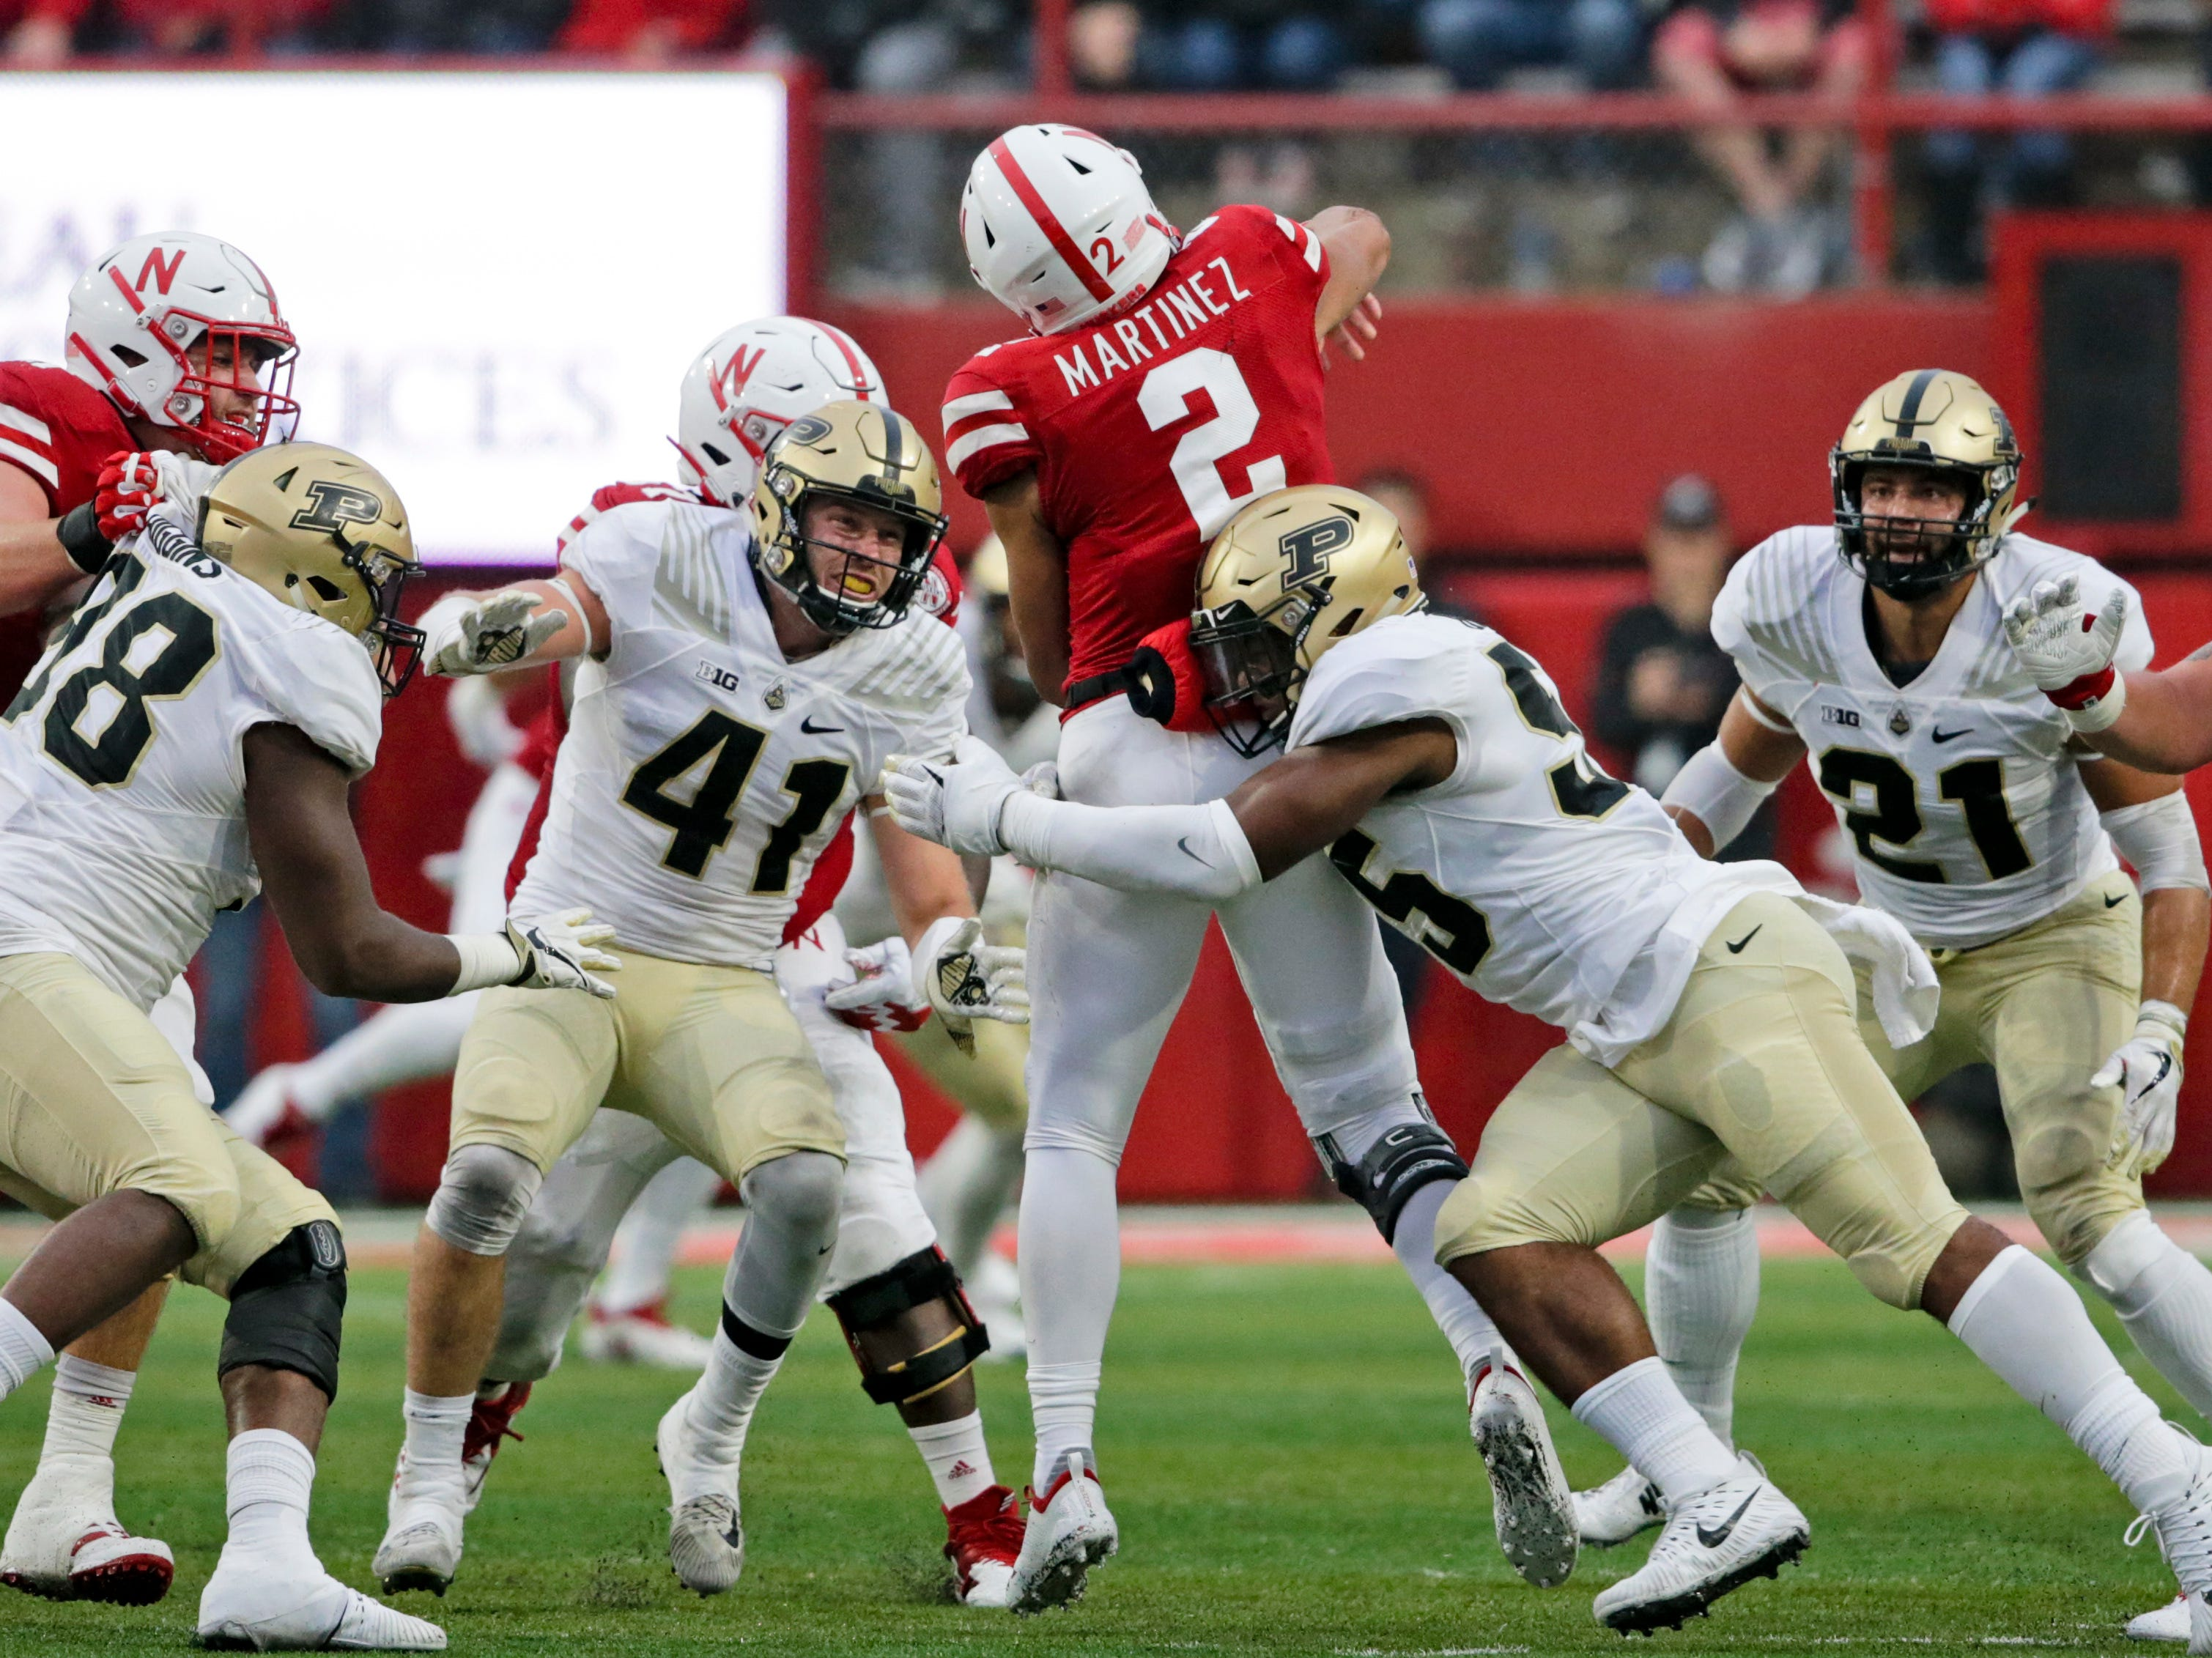 Purdue linebacker Derrick Barnes (55) and safety Jacob Thieneman (41) pressure Nebraska quarterback Adrian Martinez (2) during the second half of an NCAA college football game in Lincoln, Neb., Saturday, Sept. 29, 2018. Purdue won 42-28. (AP Photo/Nati Harnik)